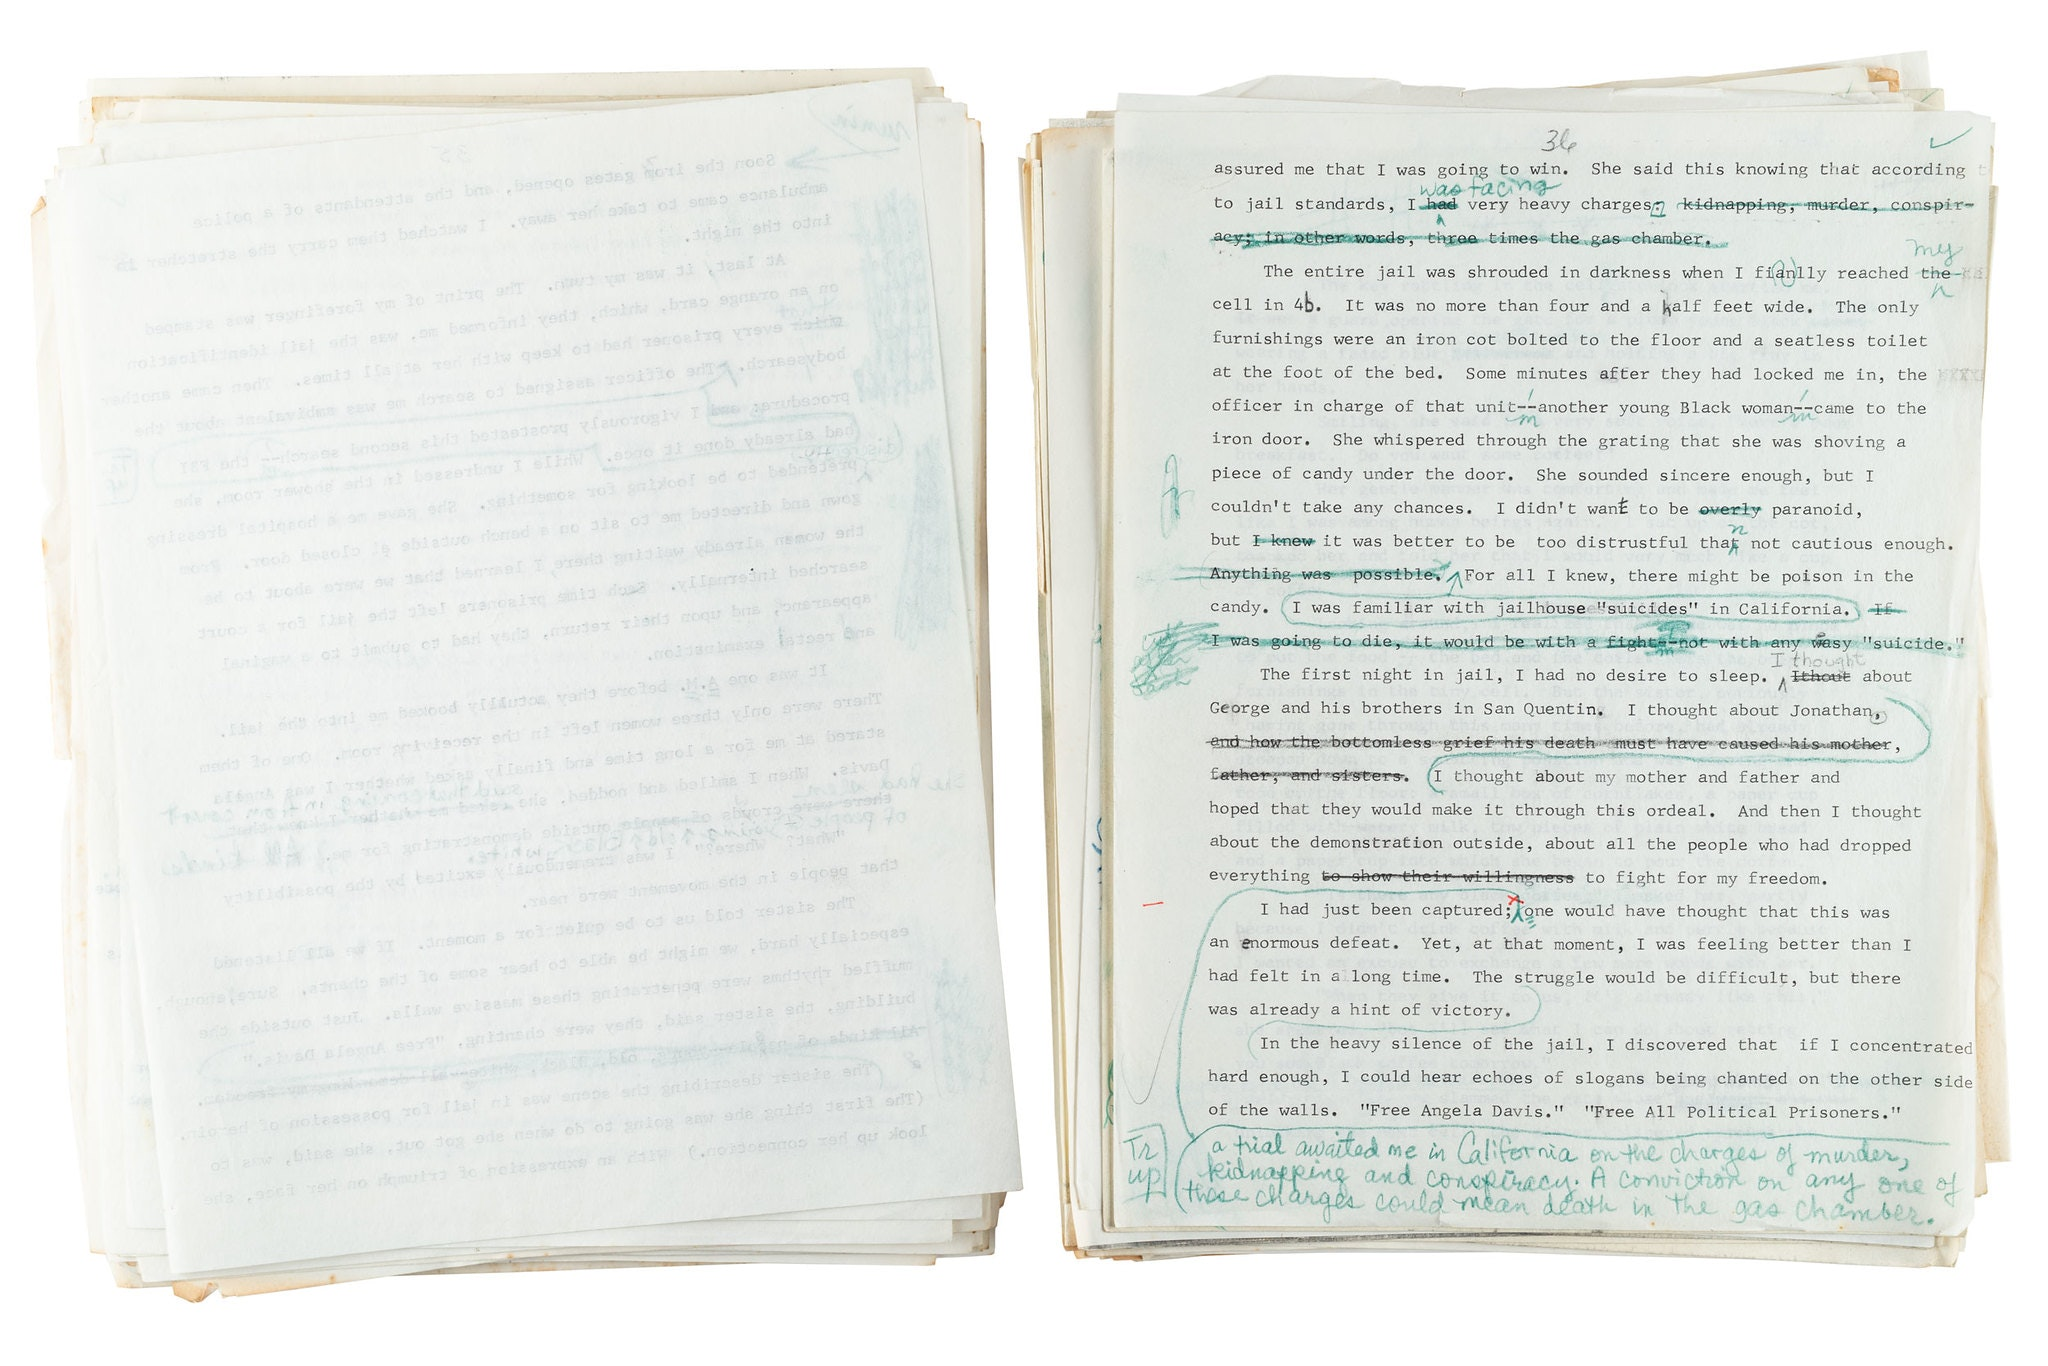 Manuscript with text marked up or circled in blue ink.